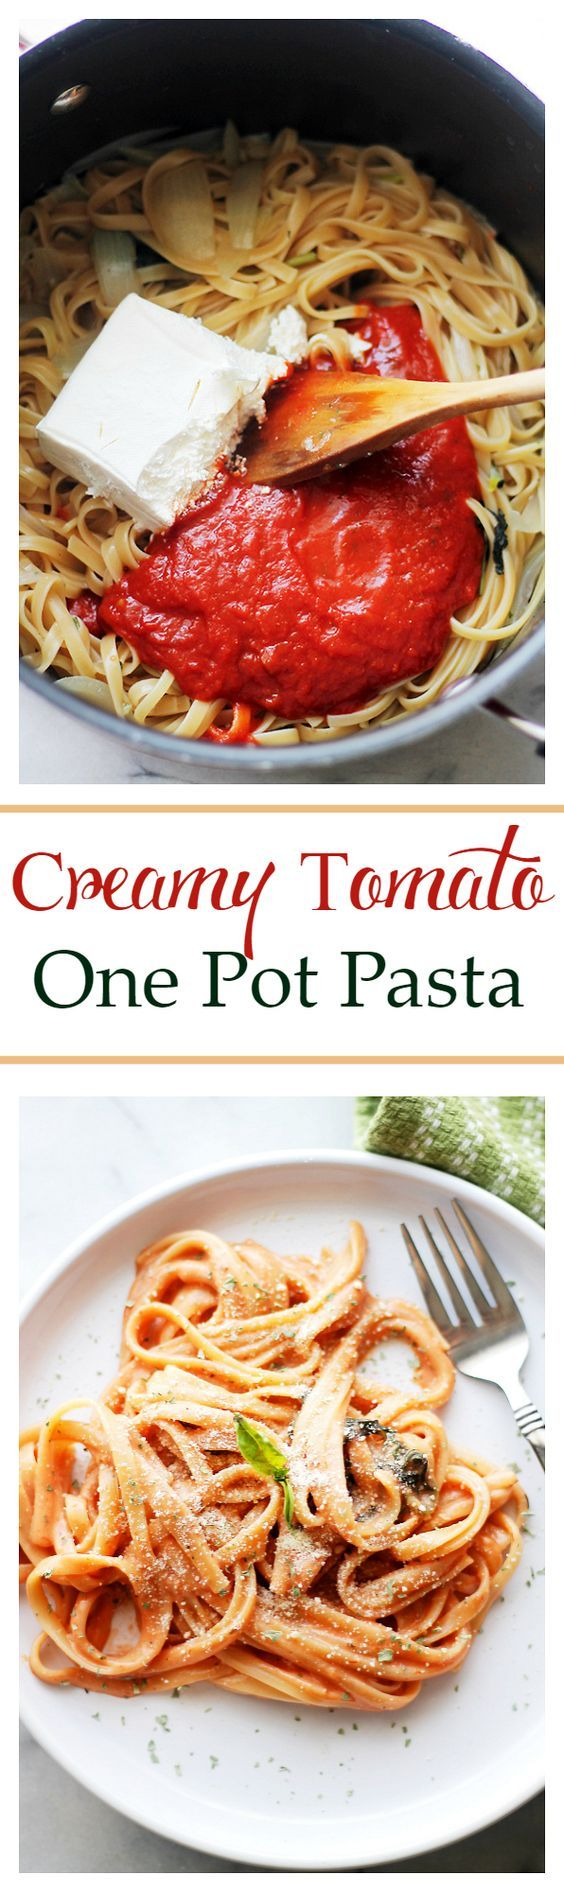 Creamy Tomato One Pot Pasta Family Dinner Recipe via Diethood #onepotpasta #onepotmeals #pastarecipes #onepotpastarecipes #onepotrecipes #mealprep #pasta #simplefamilymeals #simplefamilyrecipes #simplerecipes